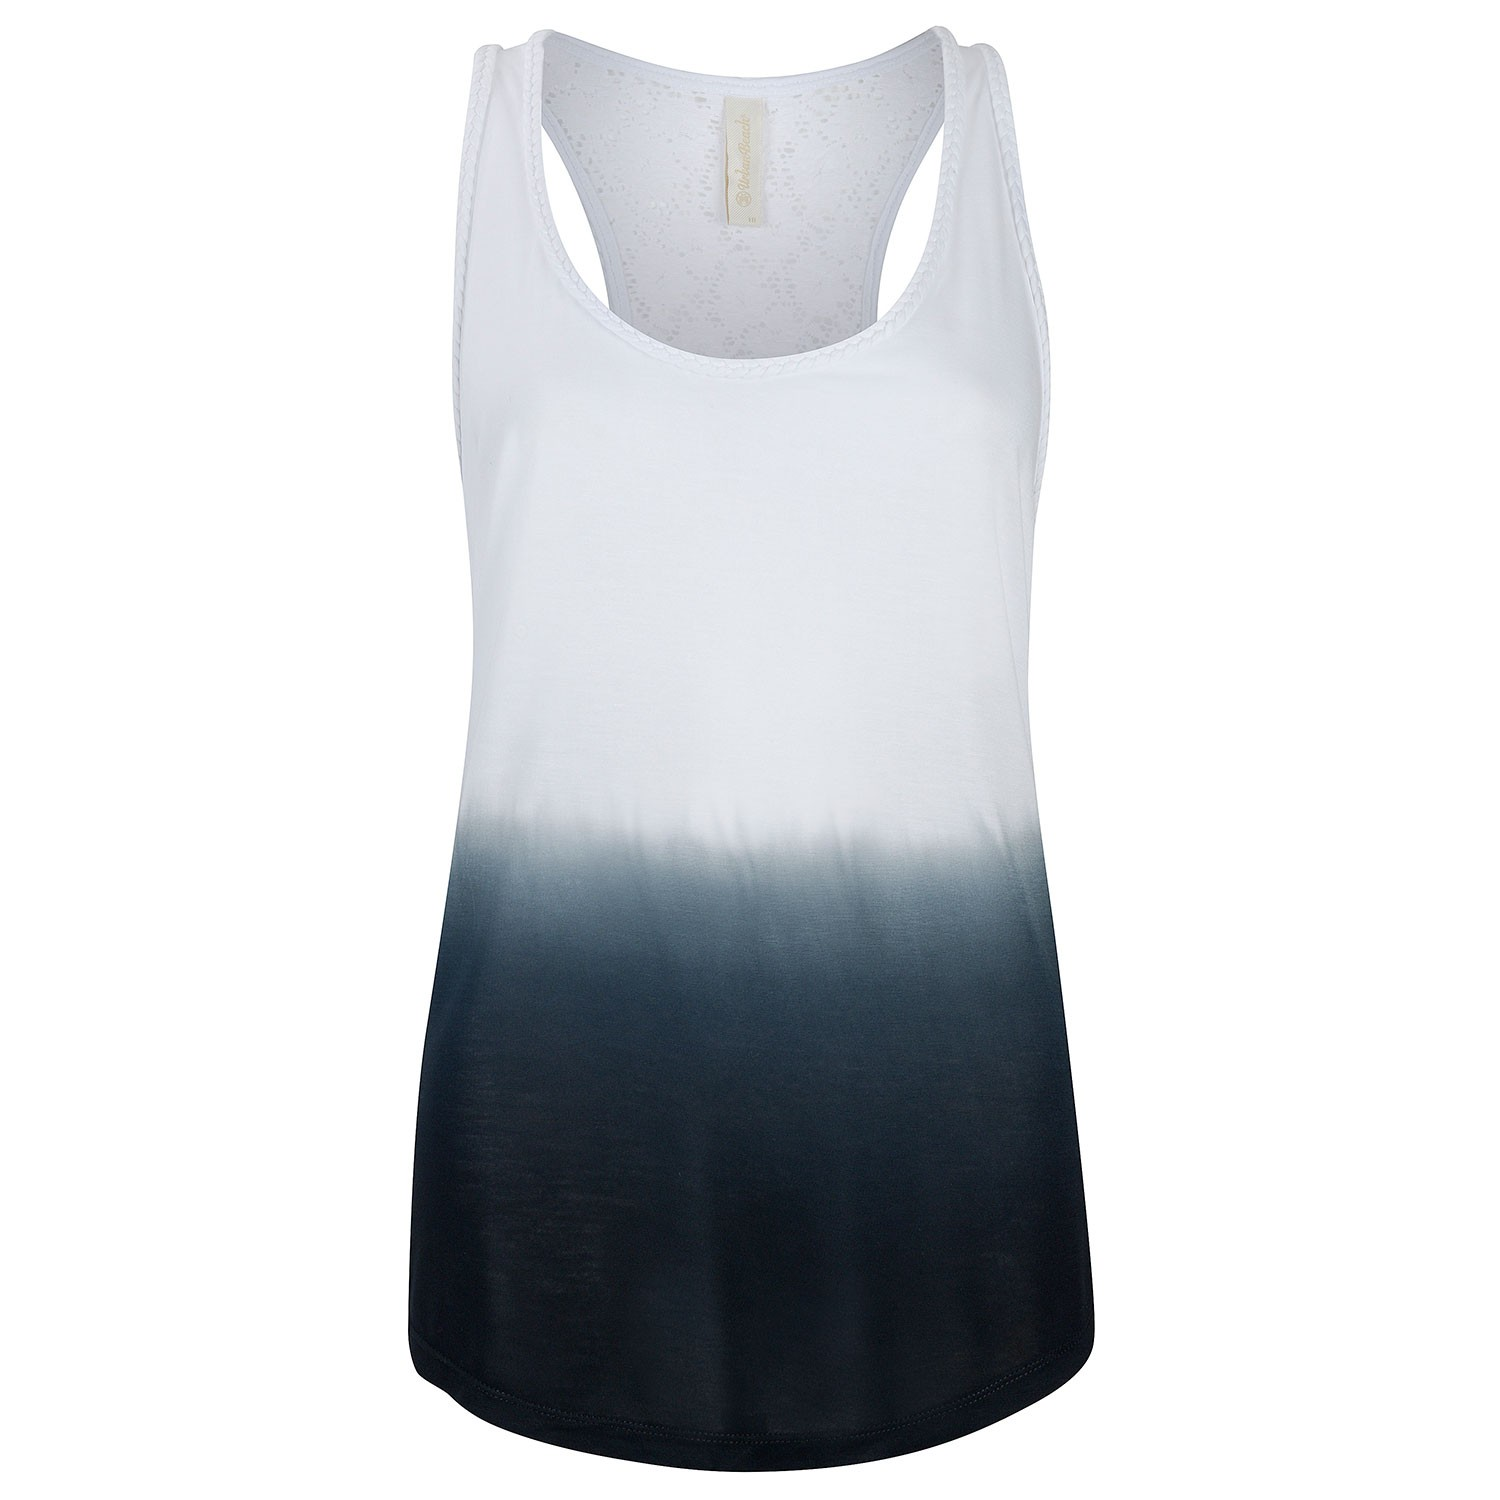 b8dd0ec681 Womens Faded Black & White Lace Vest Top Lacemaker- Free Delivery Over £20  - Urban Beach